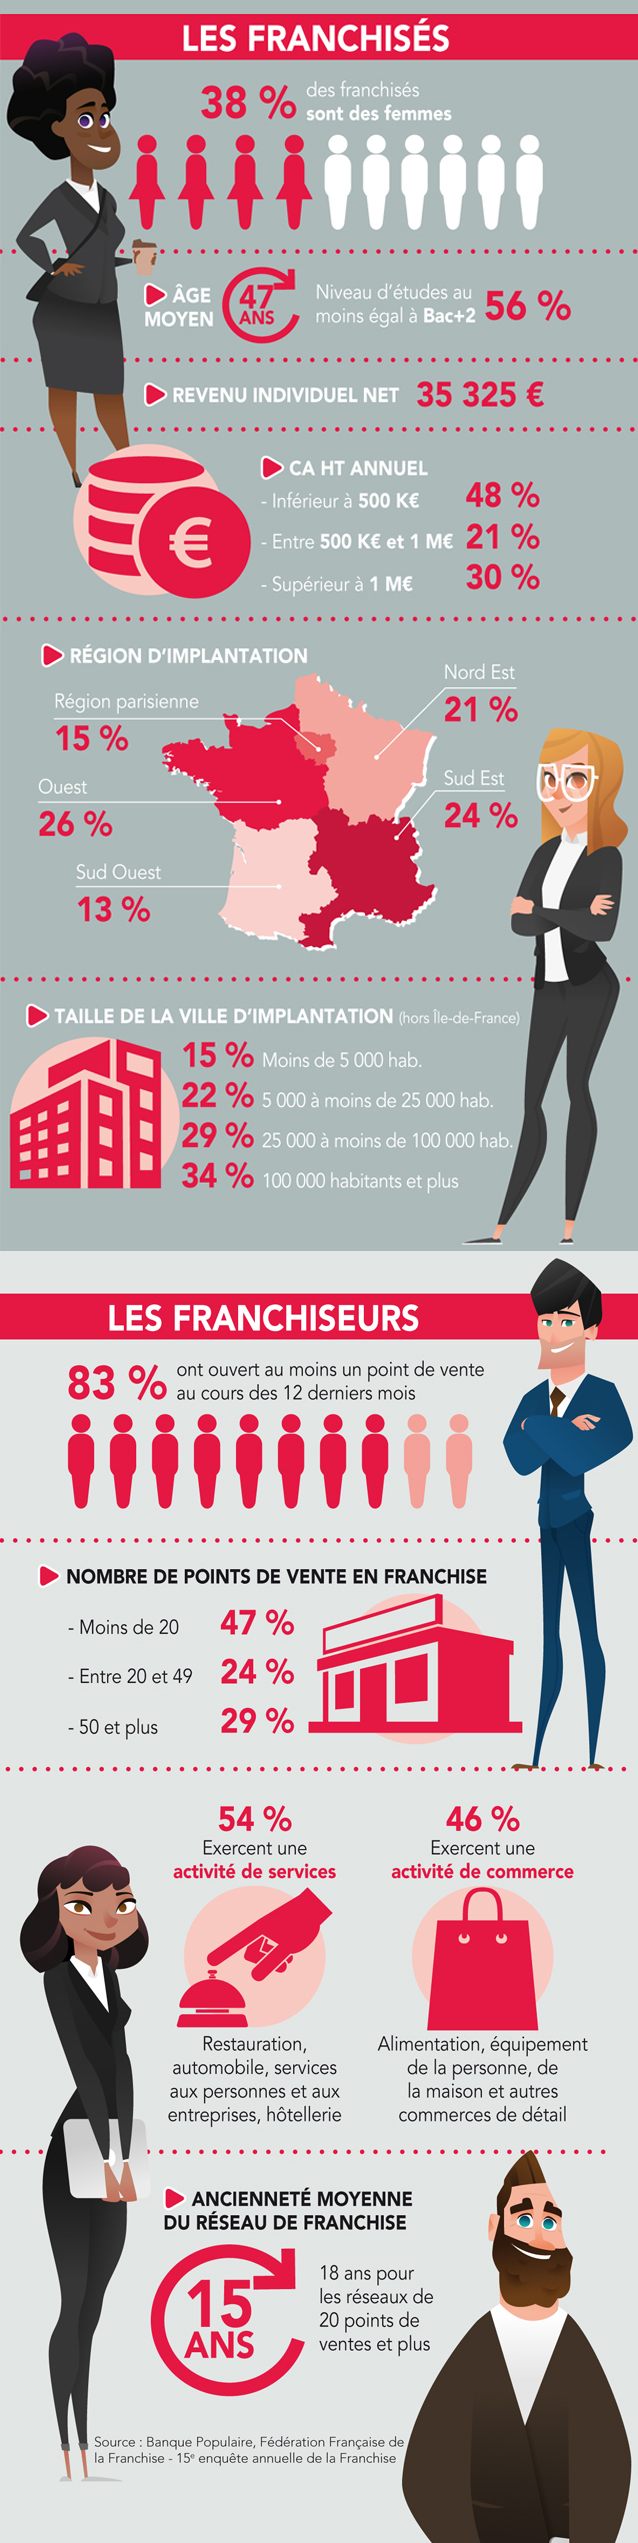 portrait_franchiseurs_franchises_officiel_franchise